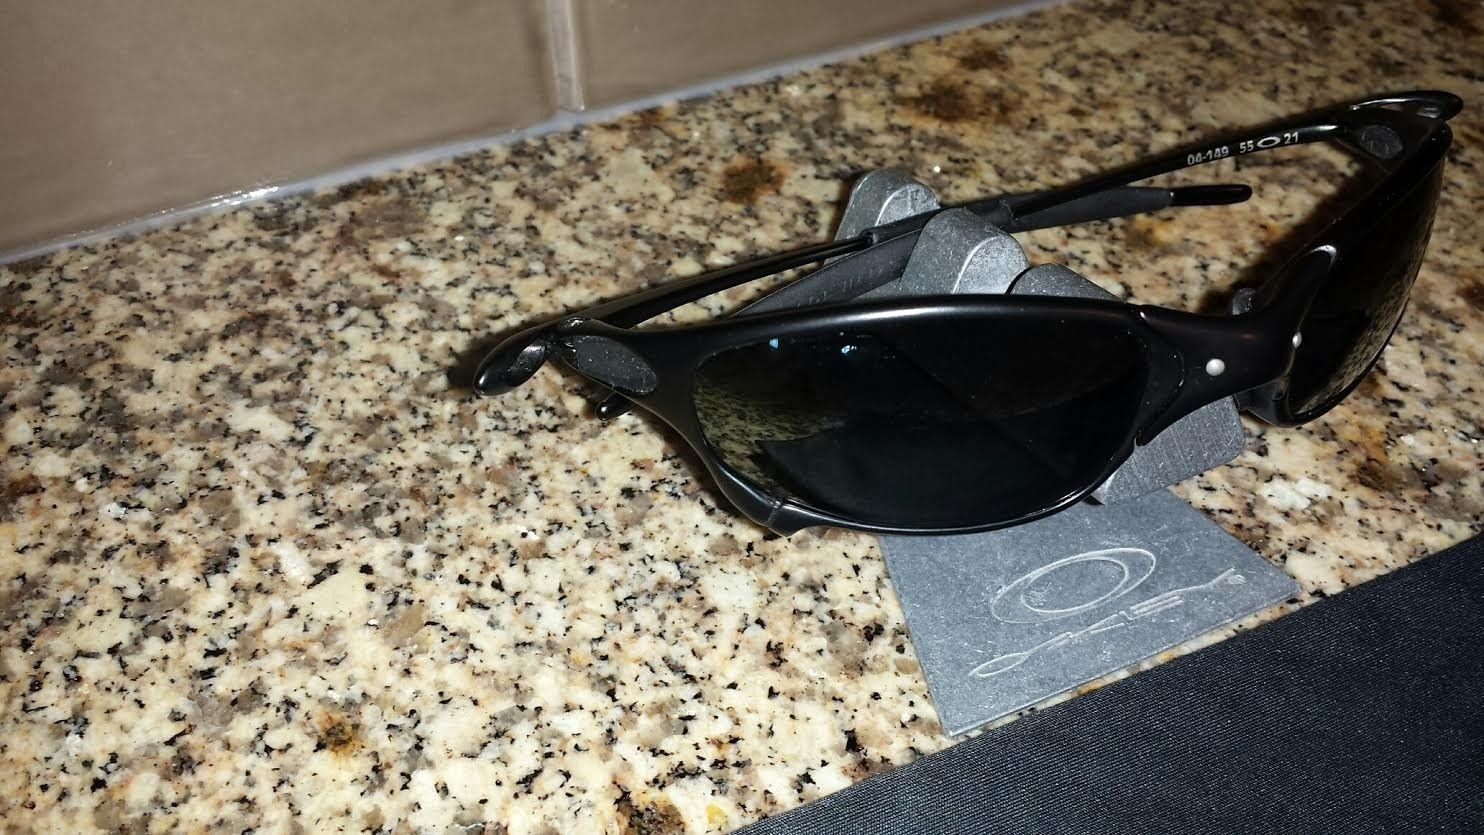 Carbon Juliet 04-149 Polarized Black Iridium - price drop $275 shipped - carbonjul2.jpe